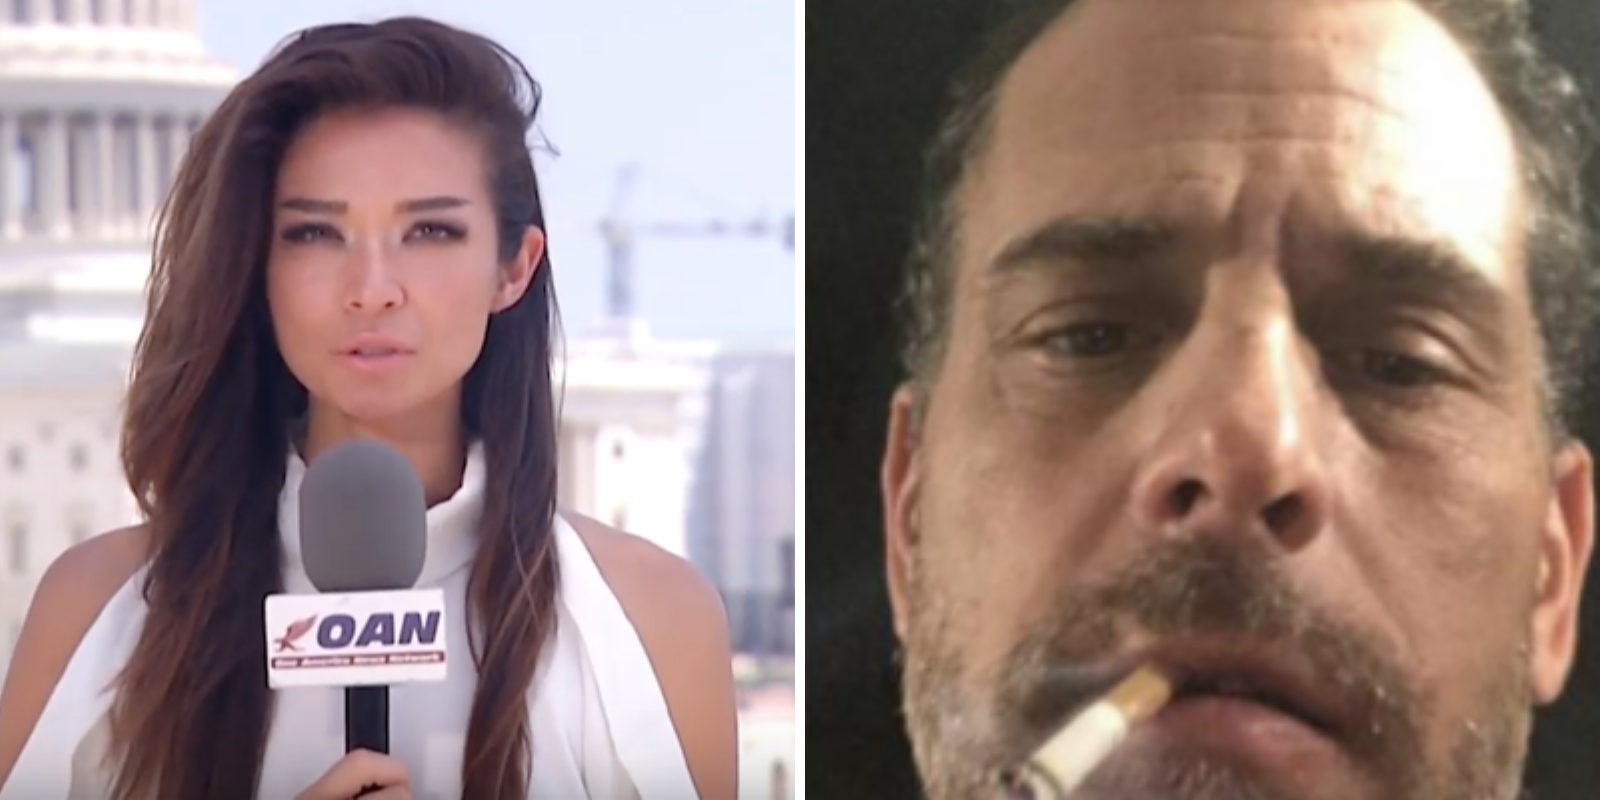 OAN reporter Chanel Rion claims Hunter Biden's hard drive reveals 'drugs, underage obsessions'